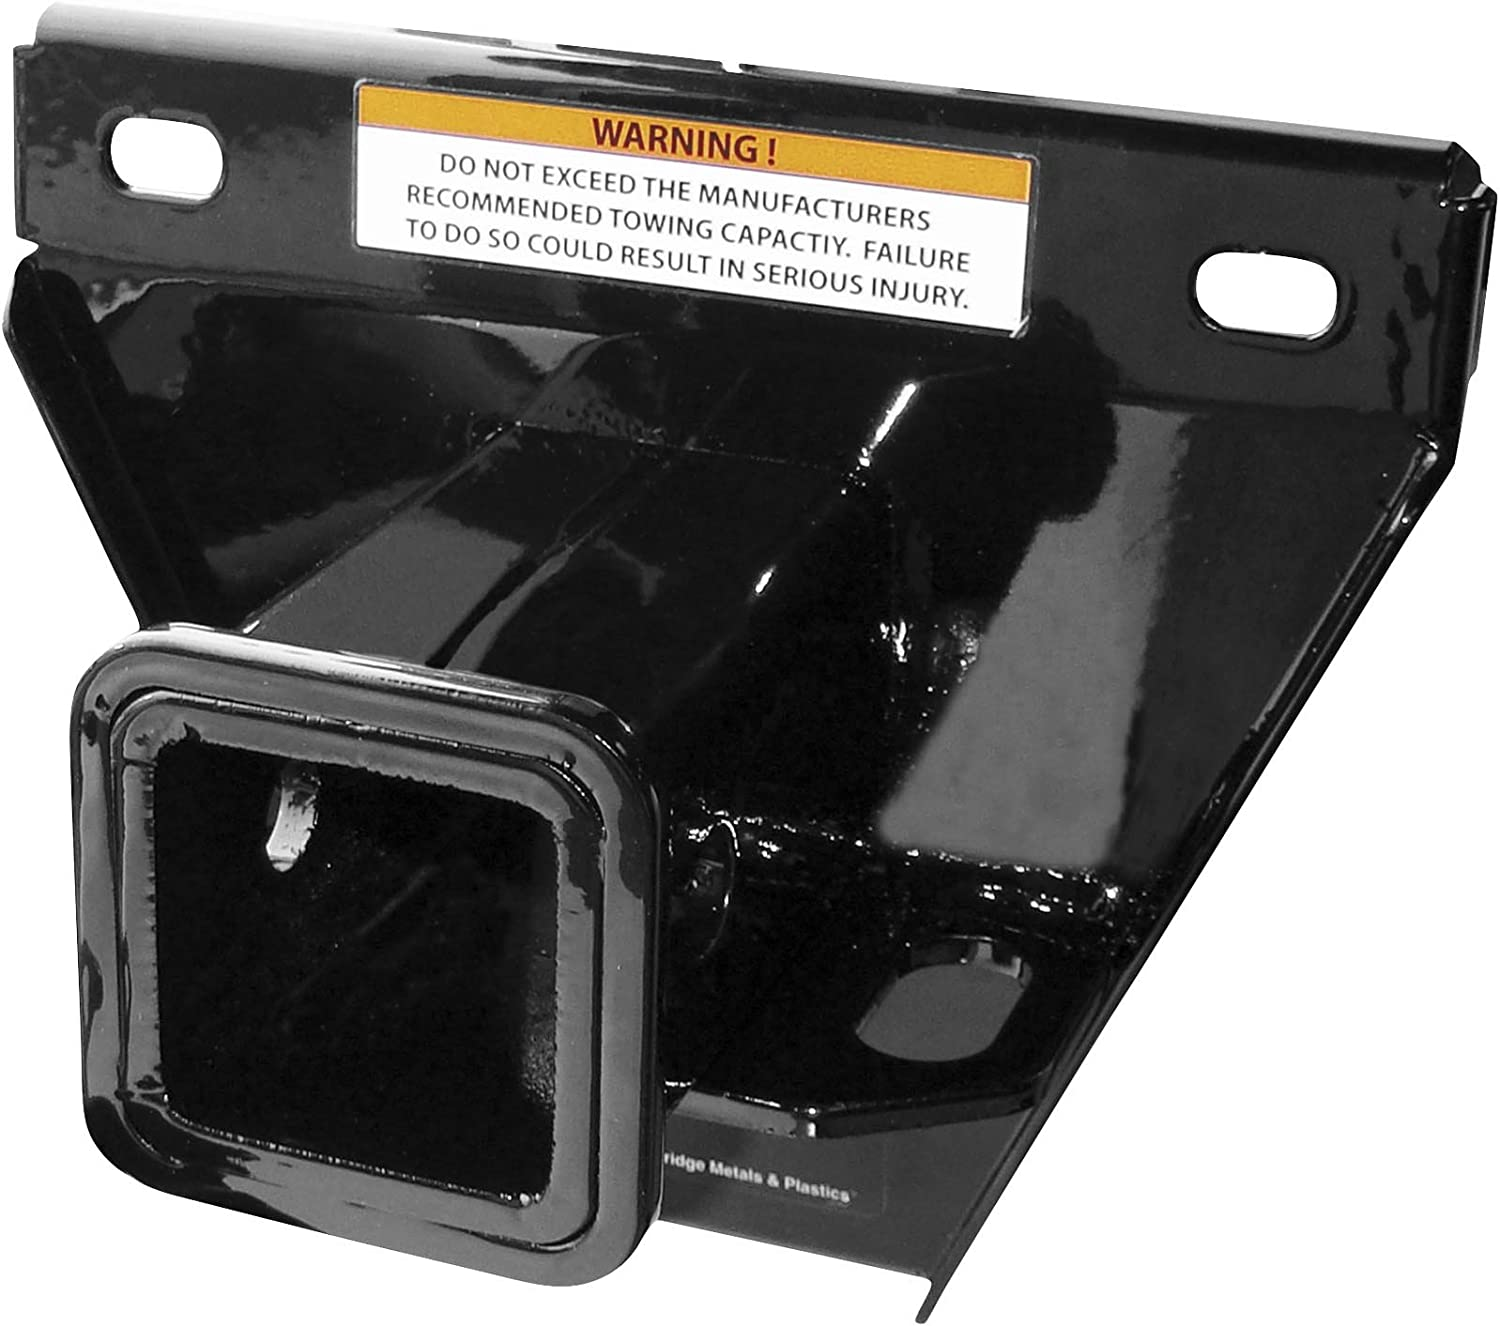 """NEW YAMAHA 2/"""" RECEIVER HITCH GRIZZLY 4X4 550 660 700 09 10 11 12 13 14"""